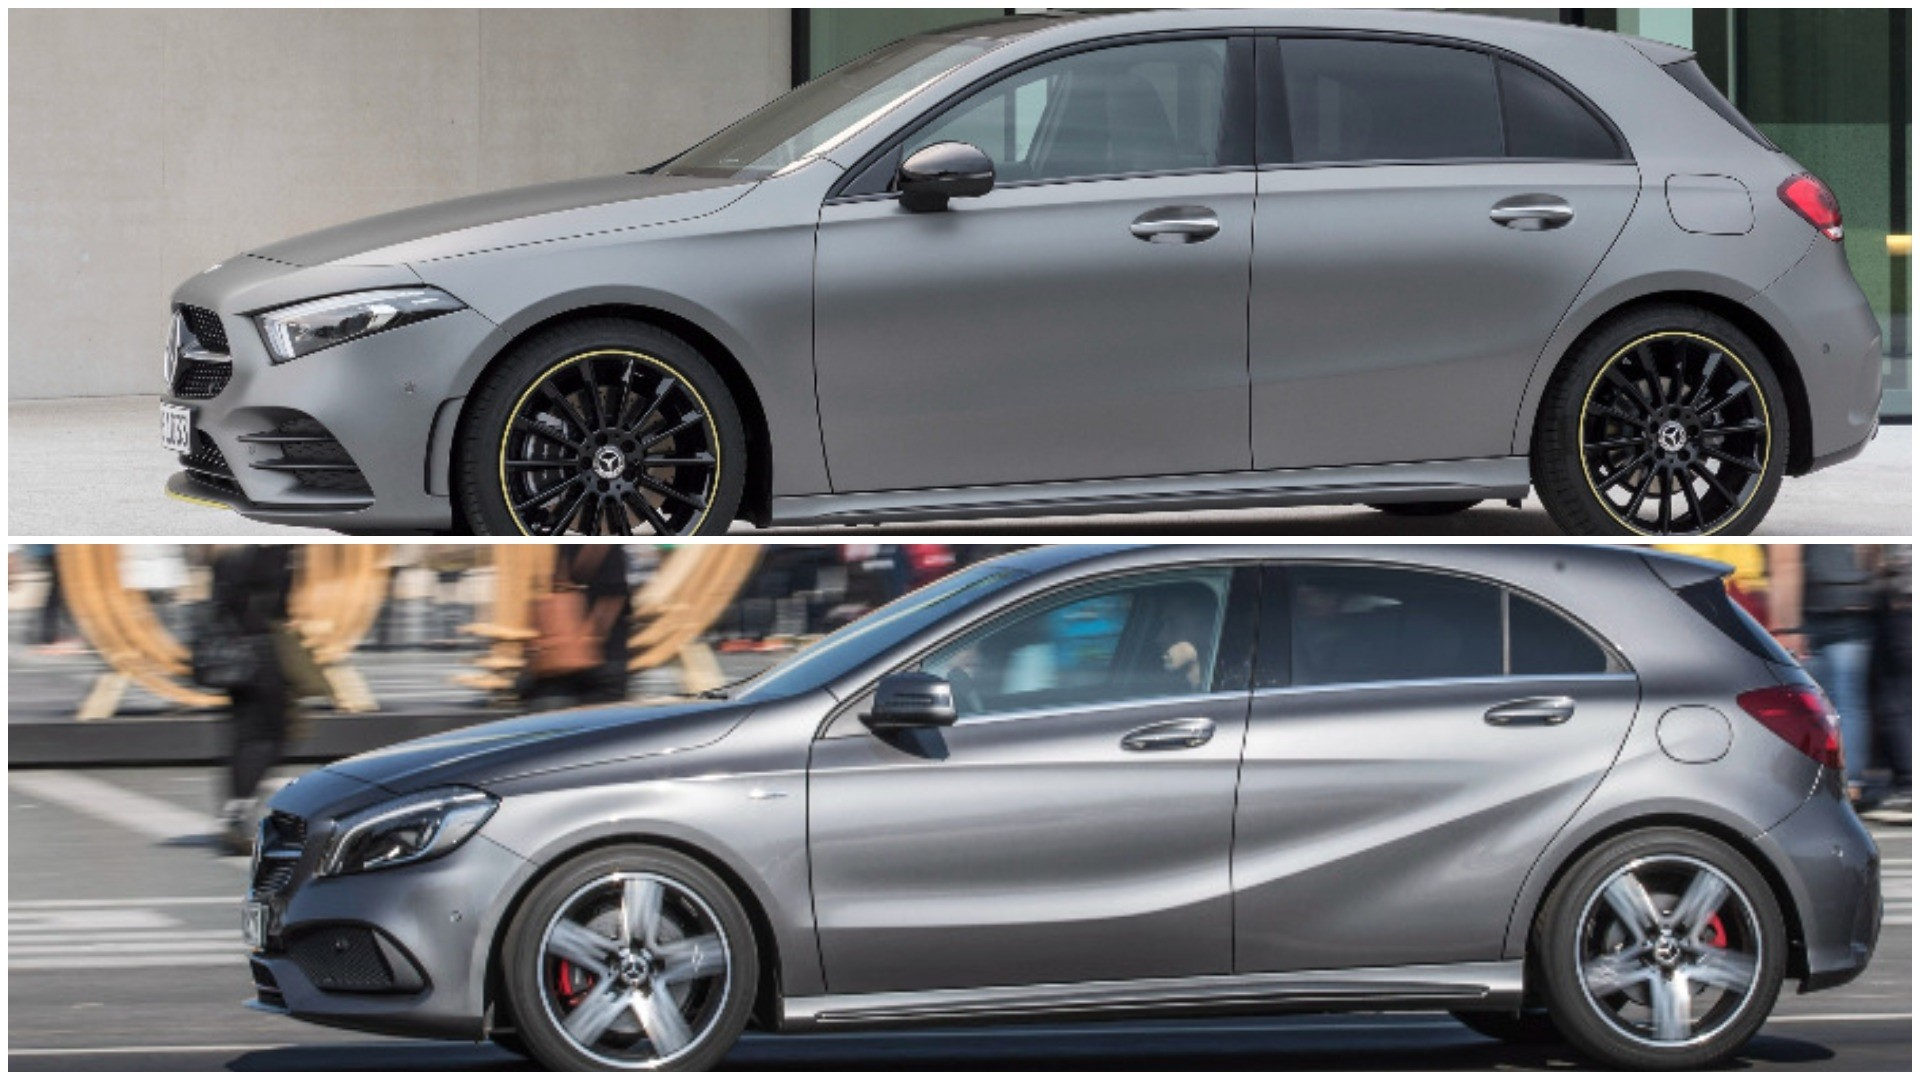 photo comparison 2019 w177 mercedes a class vs old w176 a class autoevolution. Black Bedroom Furniture Sets. Home Design Ideas